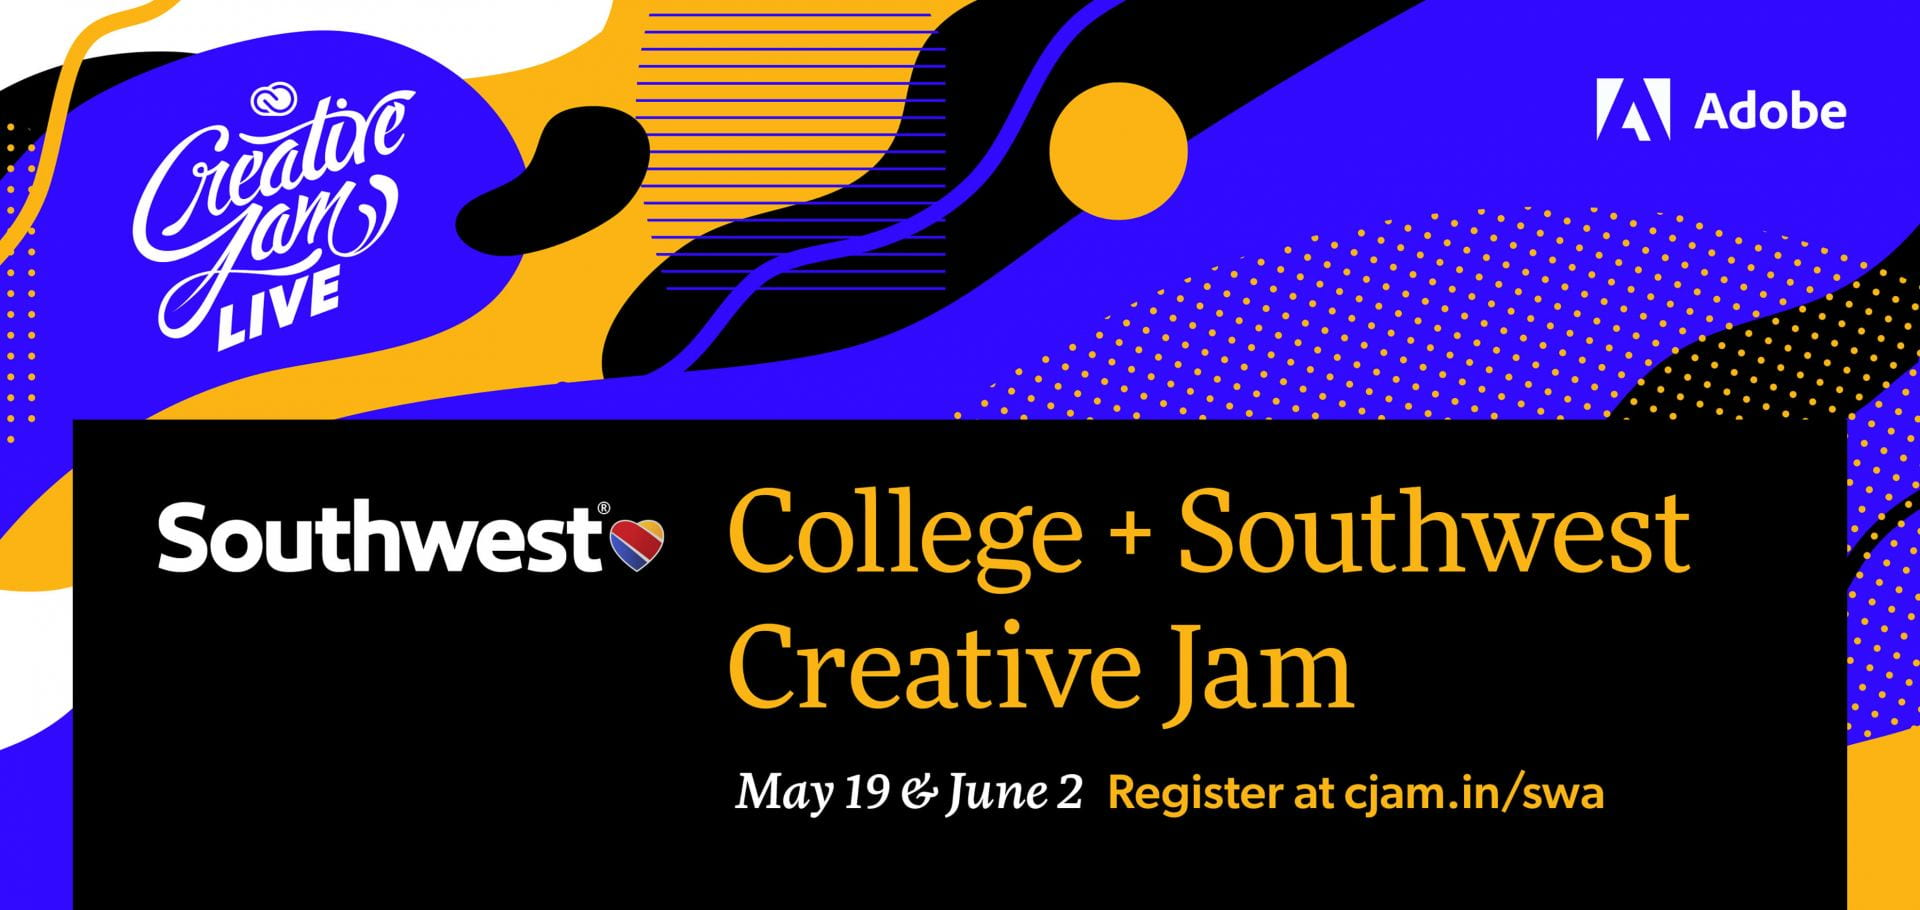 College + Southwest Airlines Creative Jam LIVE with Adobe XD